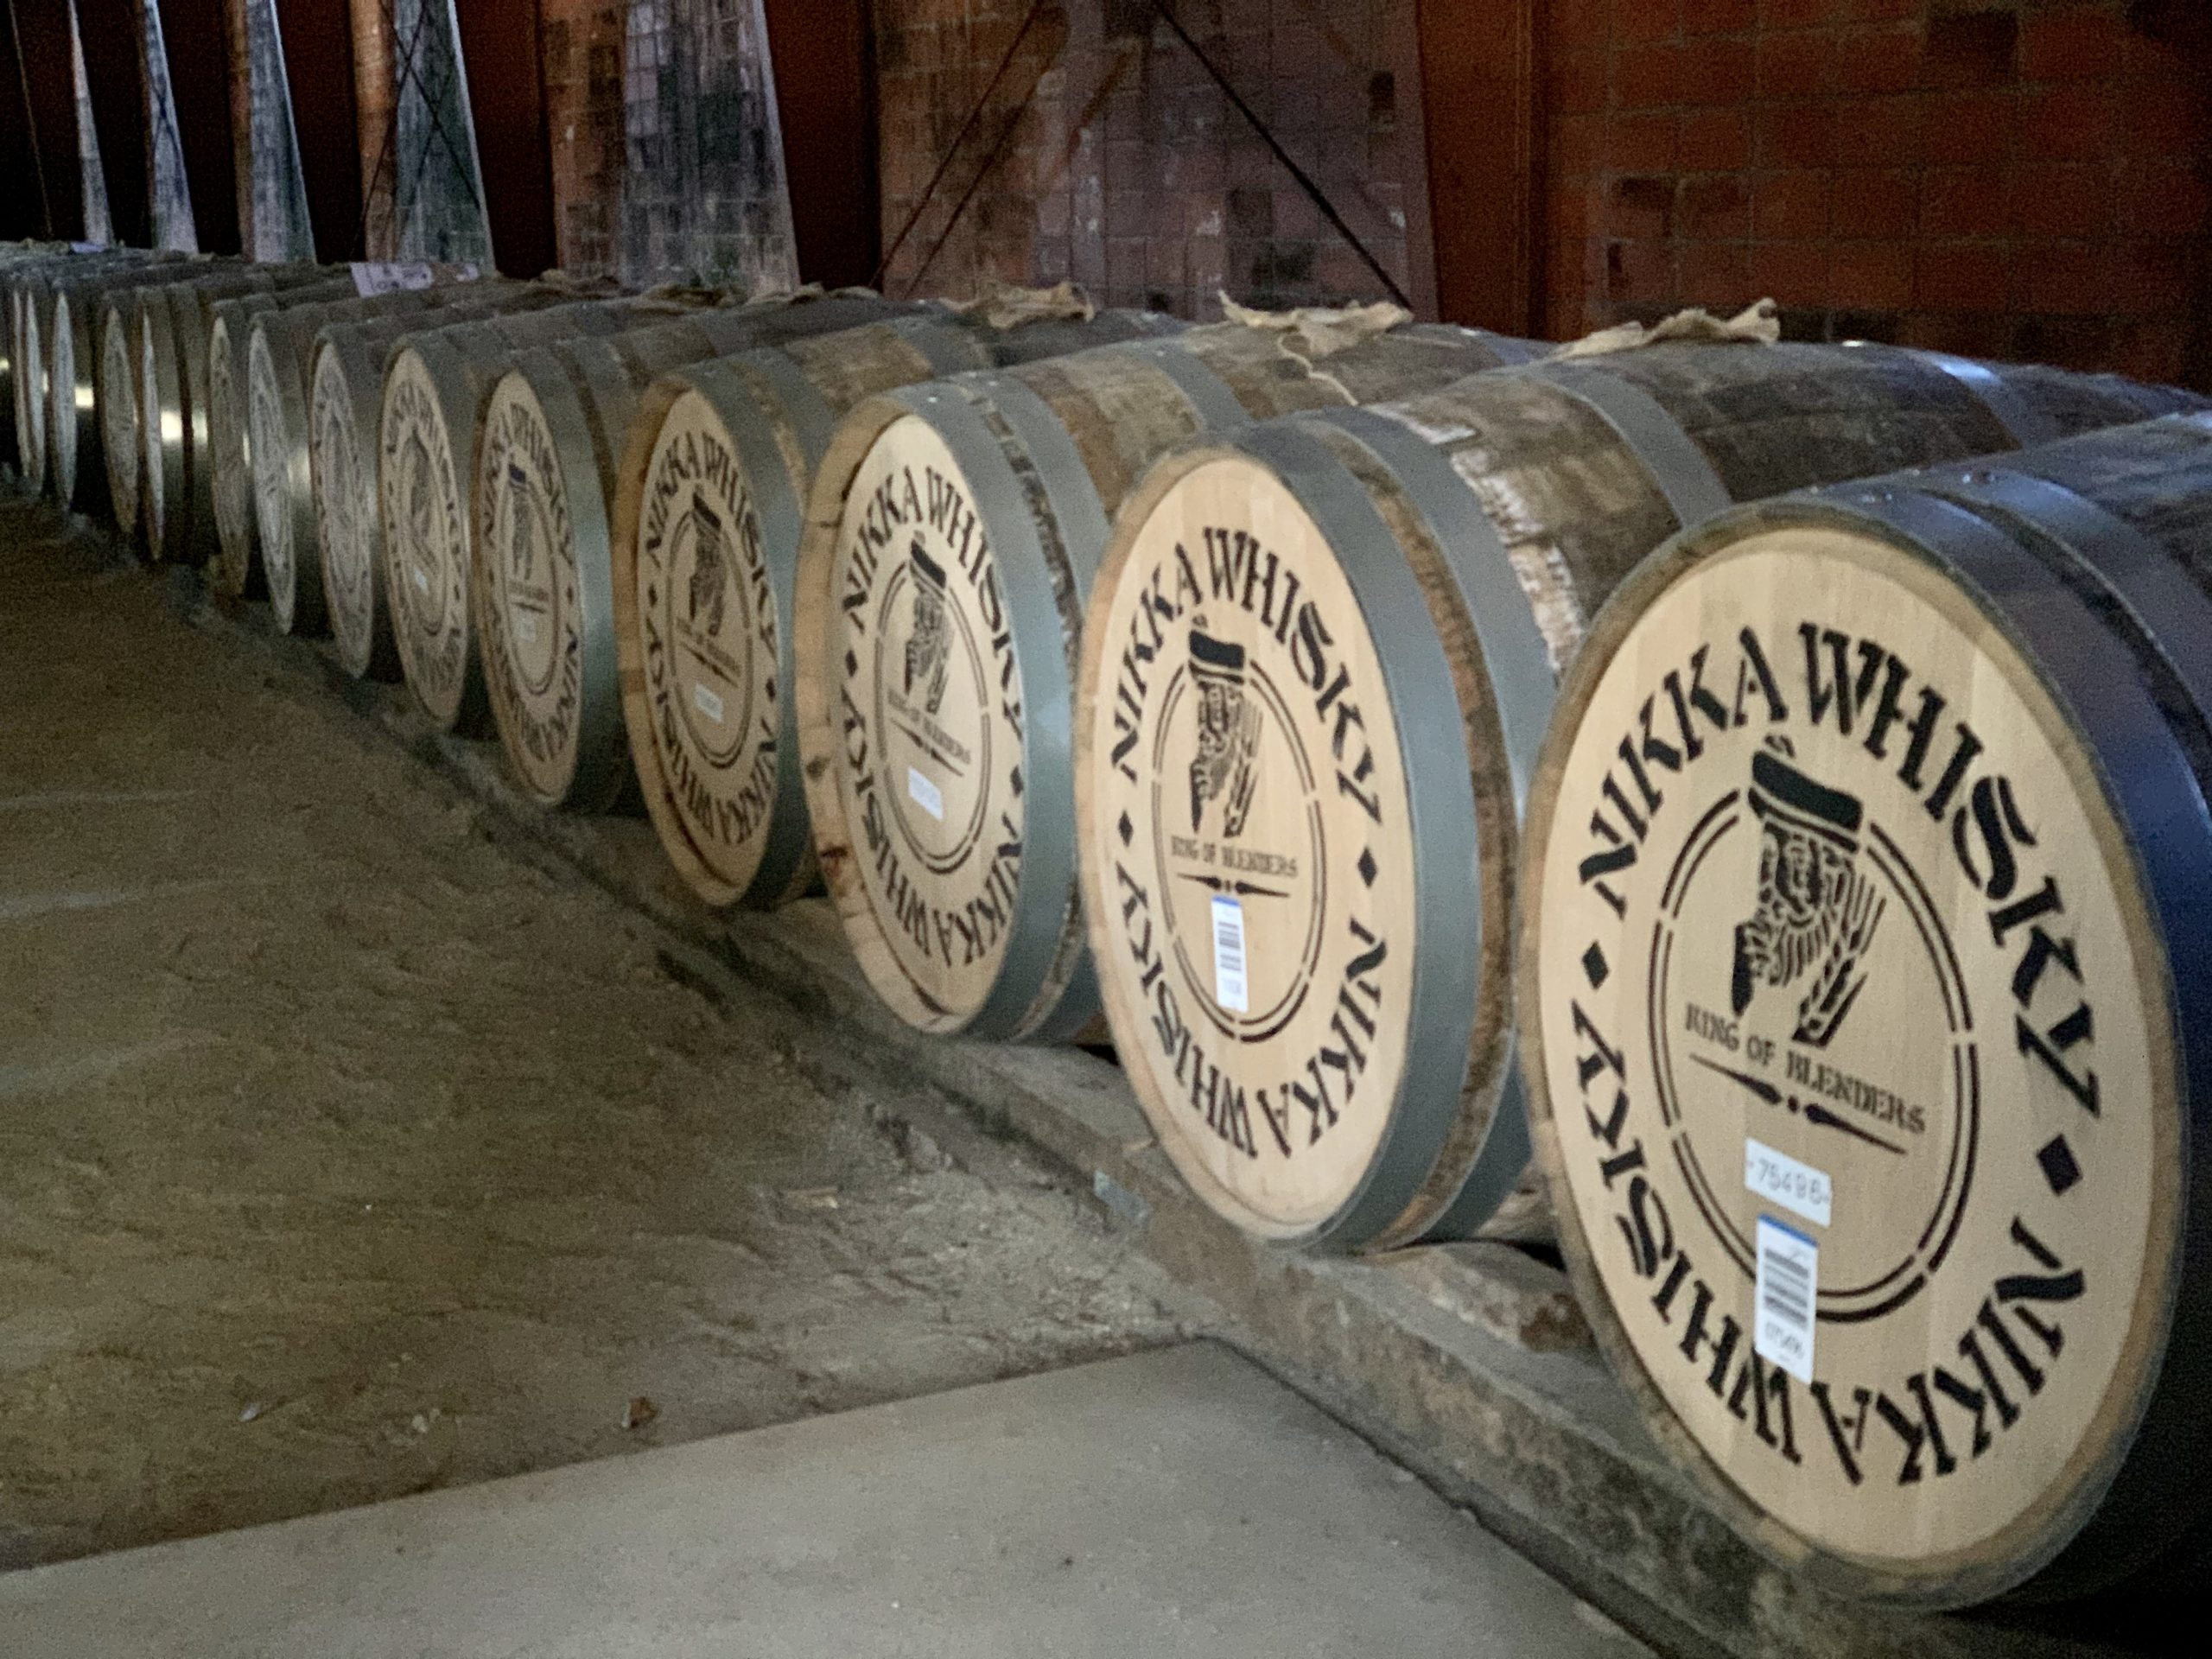 One of the top manufacturers in the country is award-winning Nikka Whisky, which offers tours and tastings to the public. Photo by Carrie Coolidge